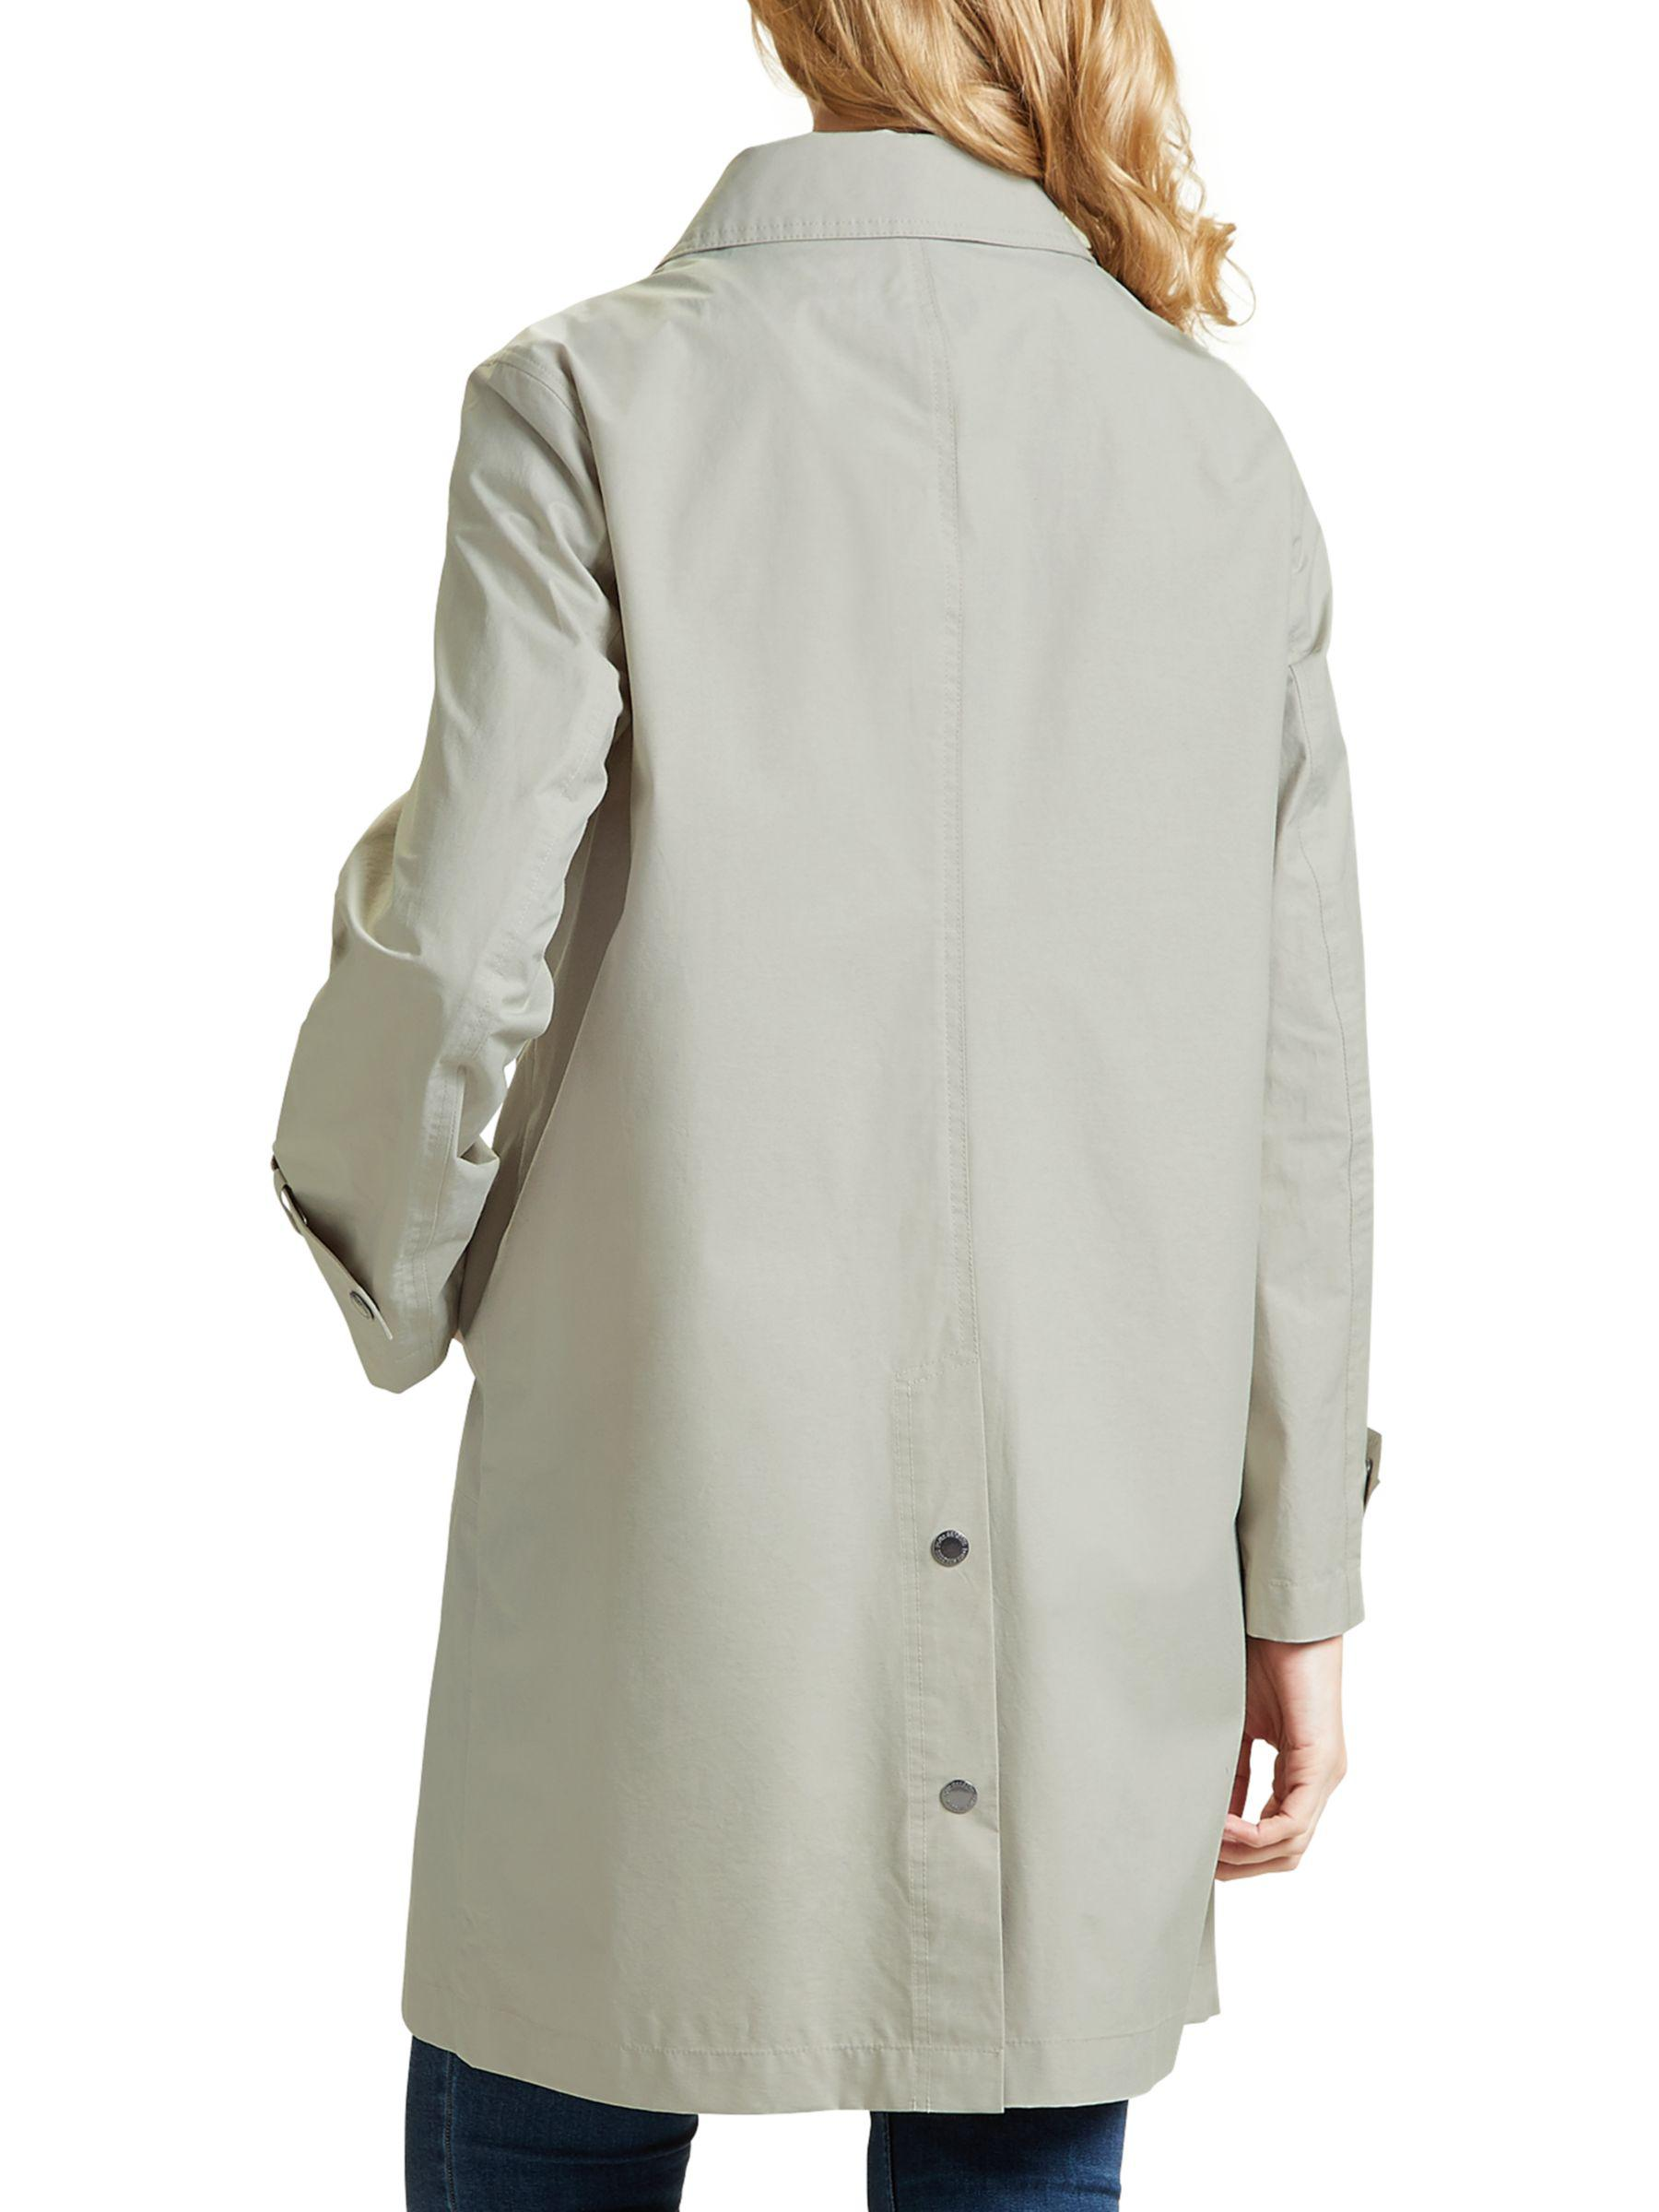 newest selection lovely design modern style John Lewis Multicolor Four Seasons Unlined Raincoat